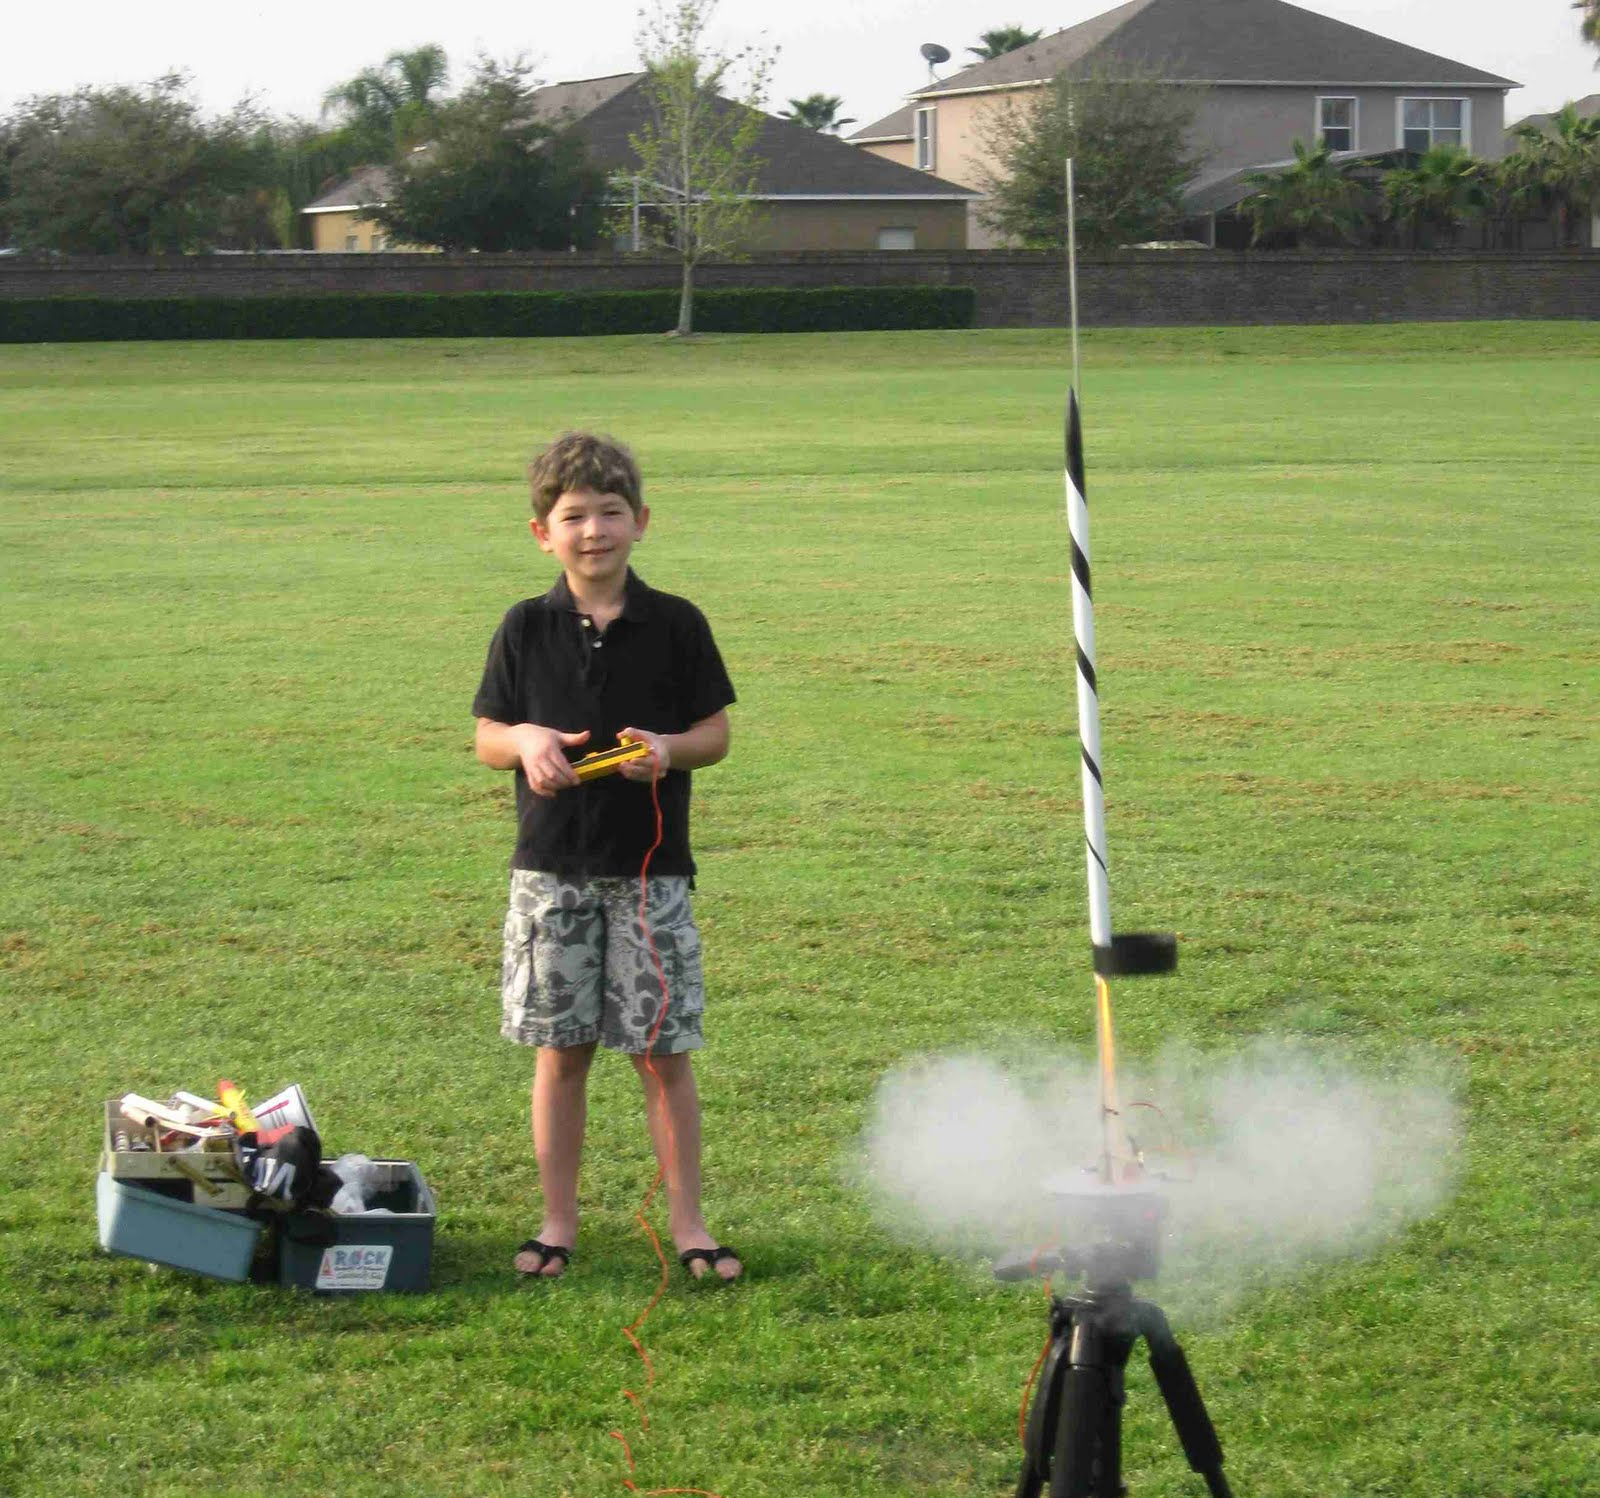 How to Launch a Model Rocket forecasting